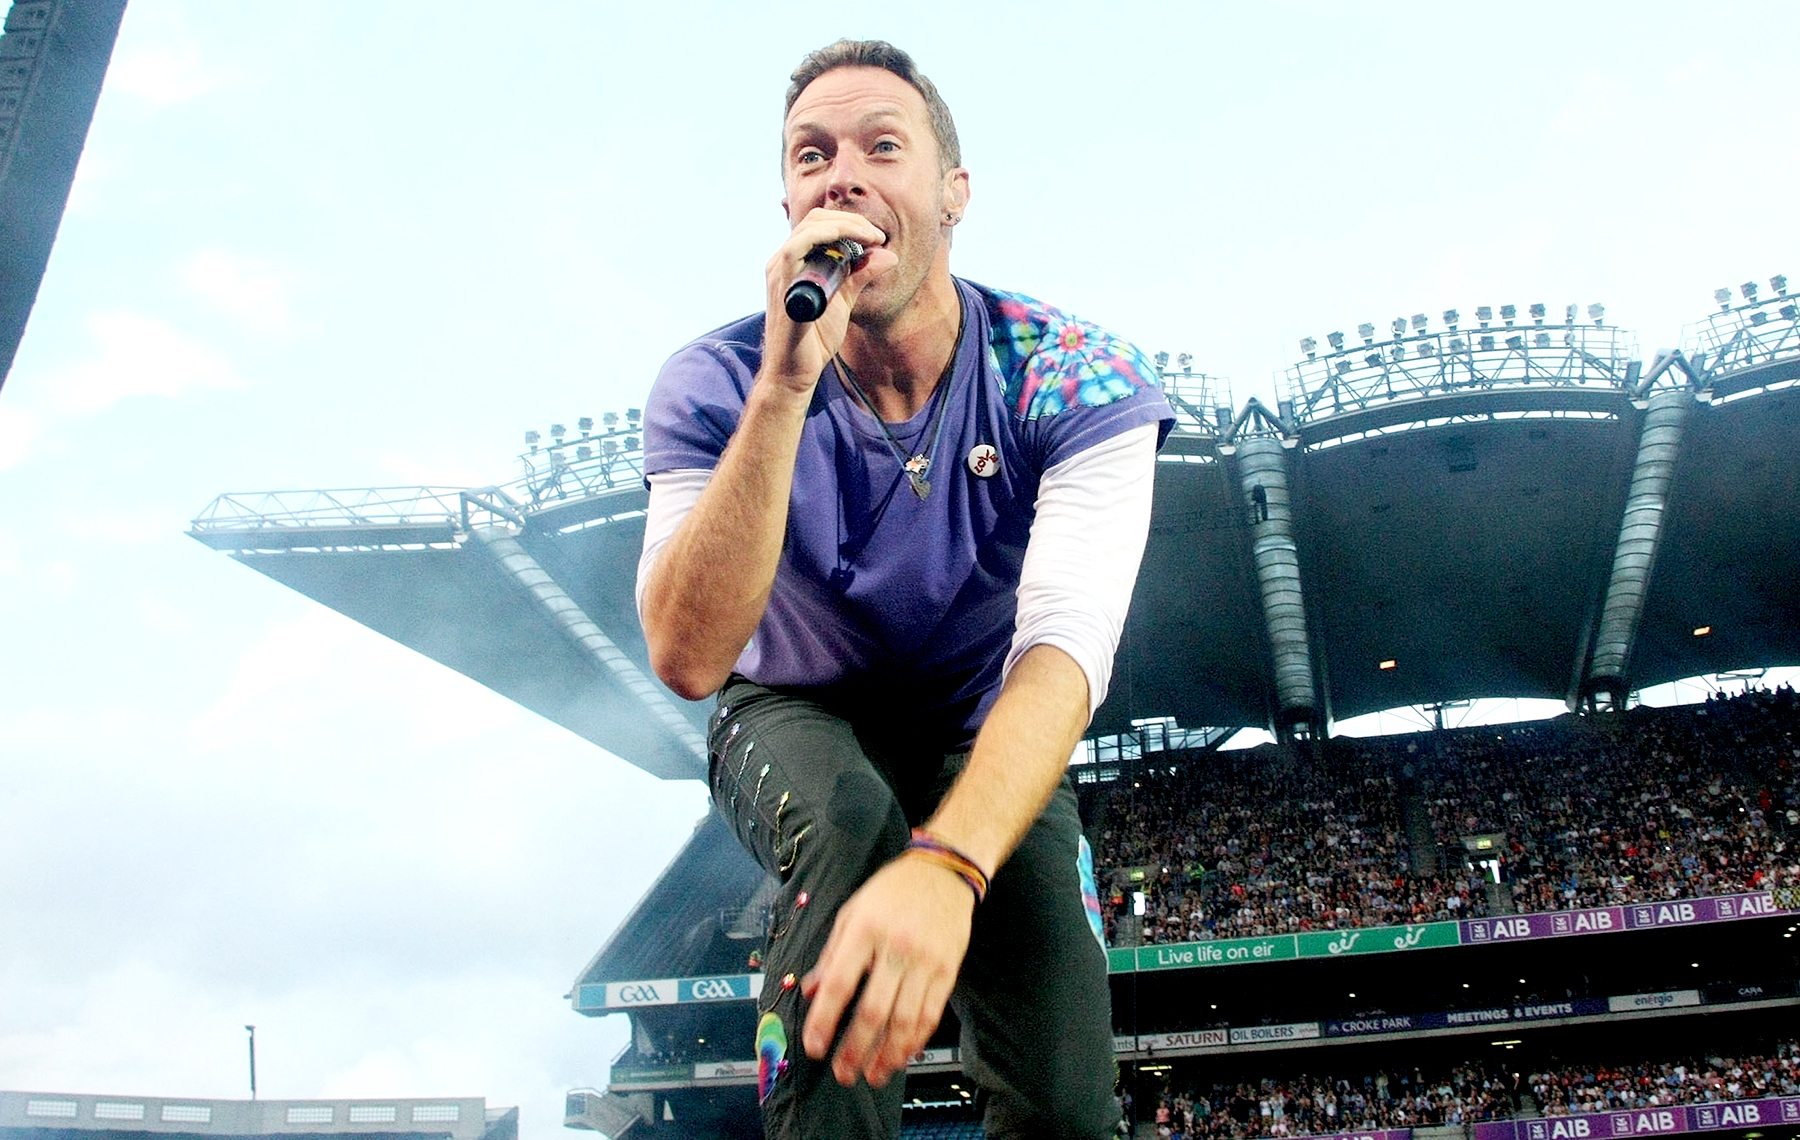 Coldplay frontman Chris Martin is seen on stage in front of 80,000 fans at Croke Park, Dublin, Ireland.